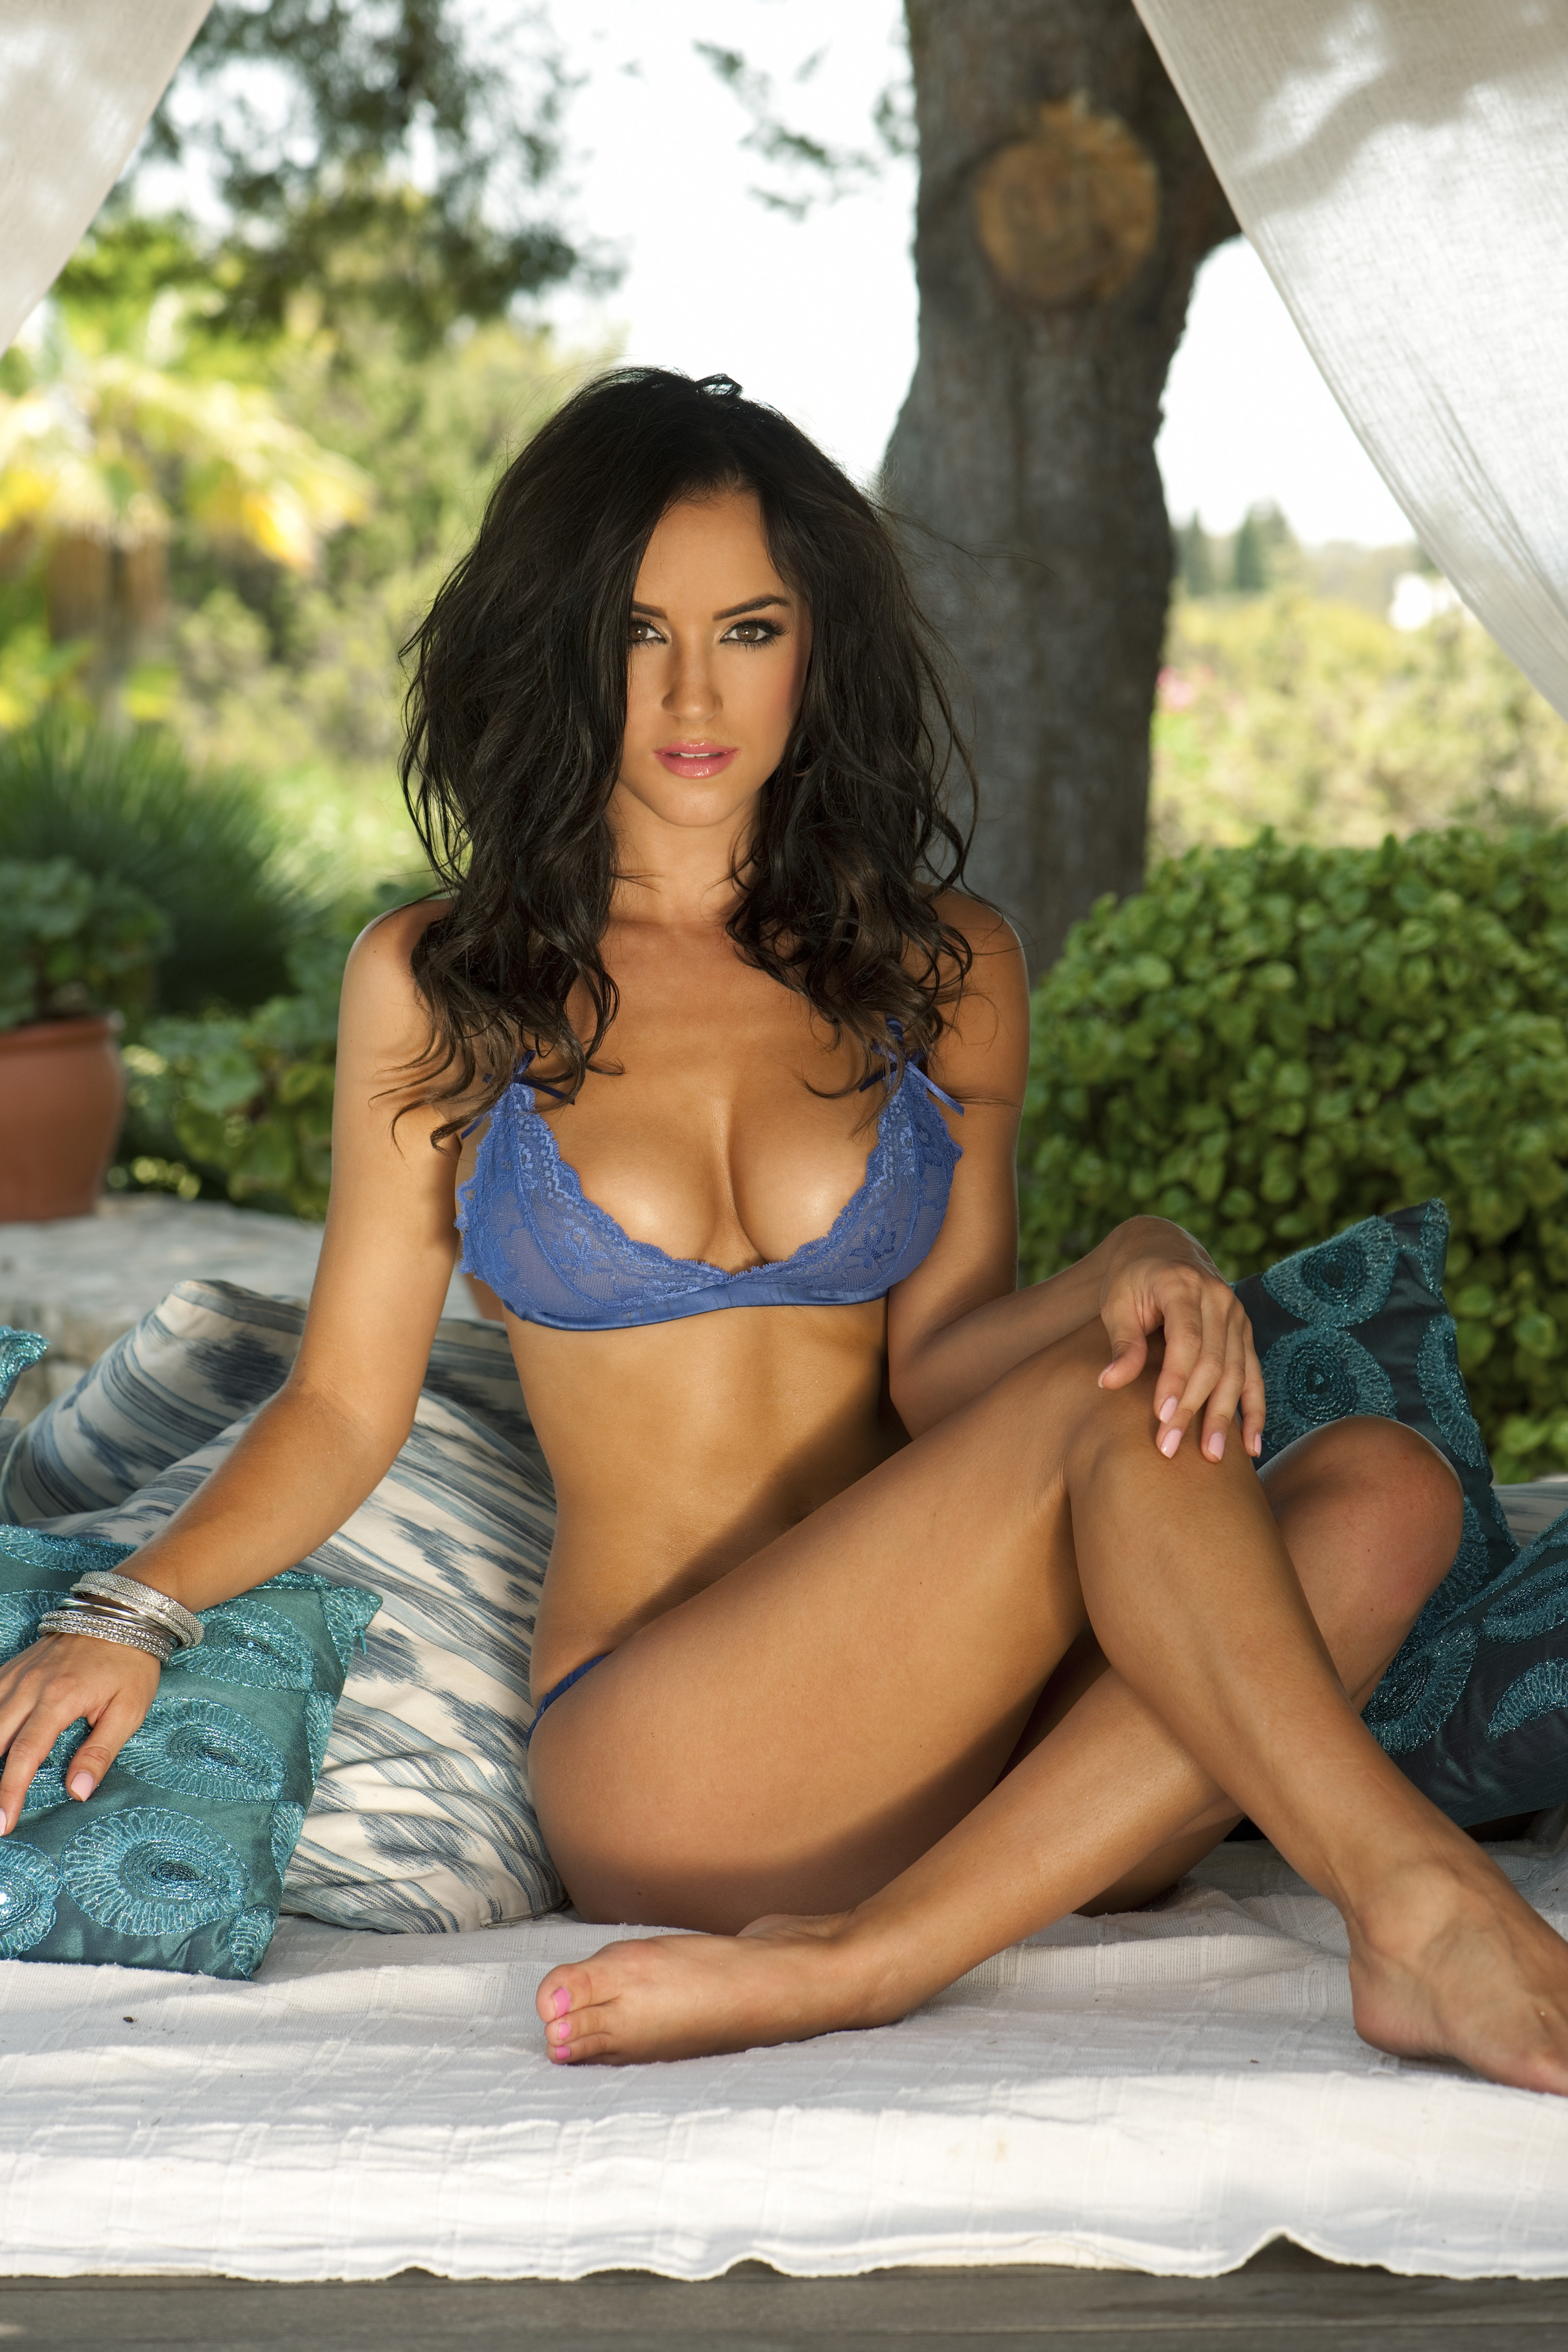 Rosie Jones S Feet Wikifeet She makes regular appearances in magazines such as nuts, front, and loaded. wikifeet